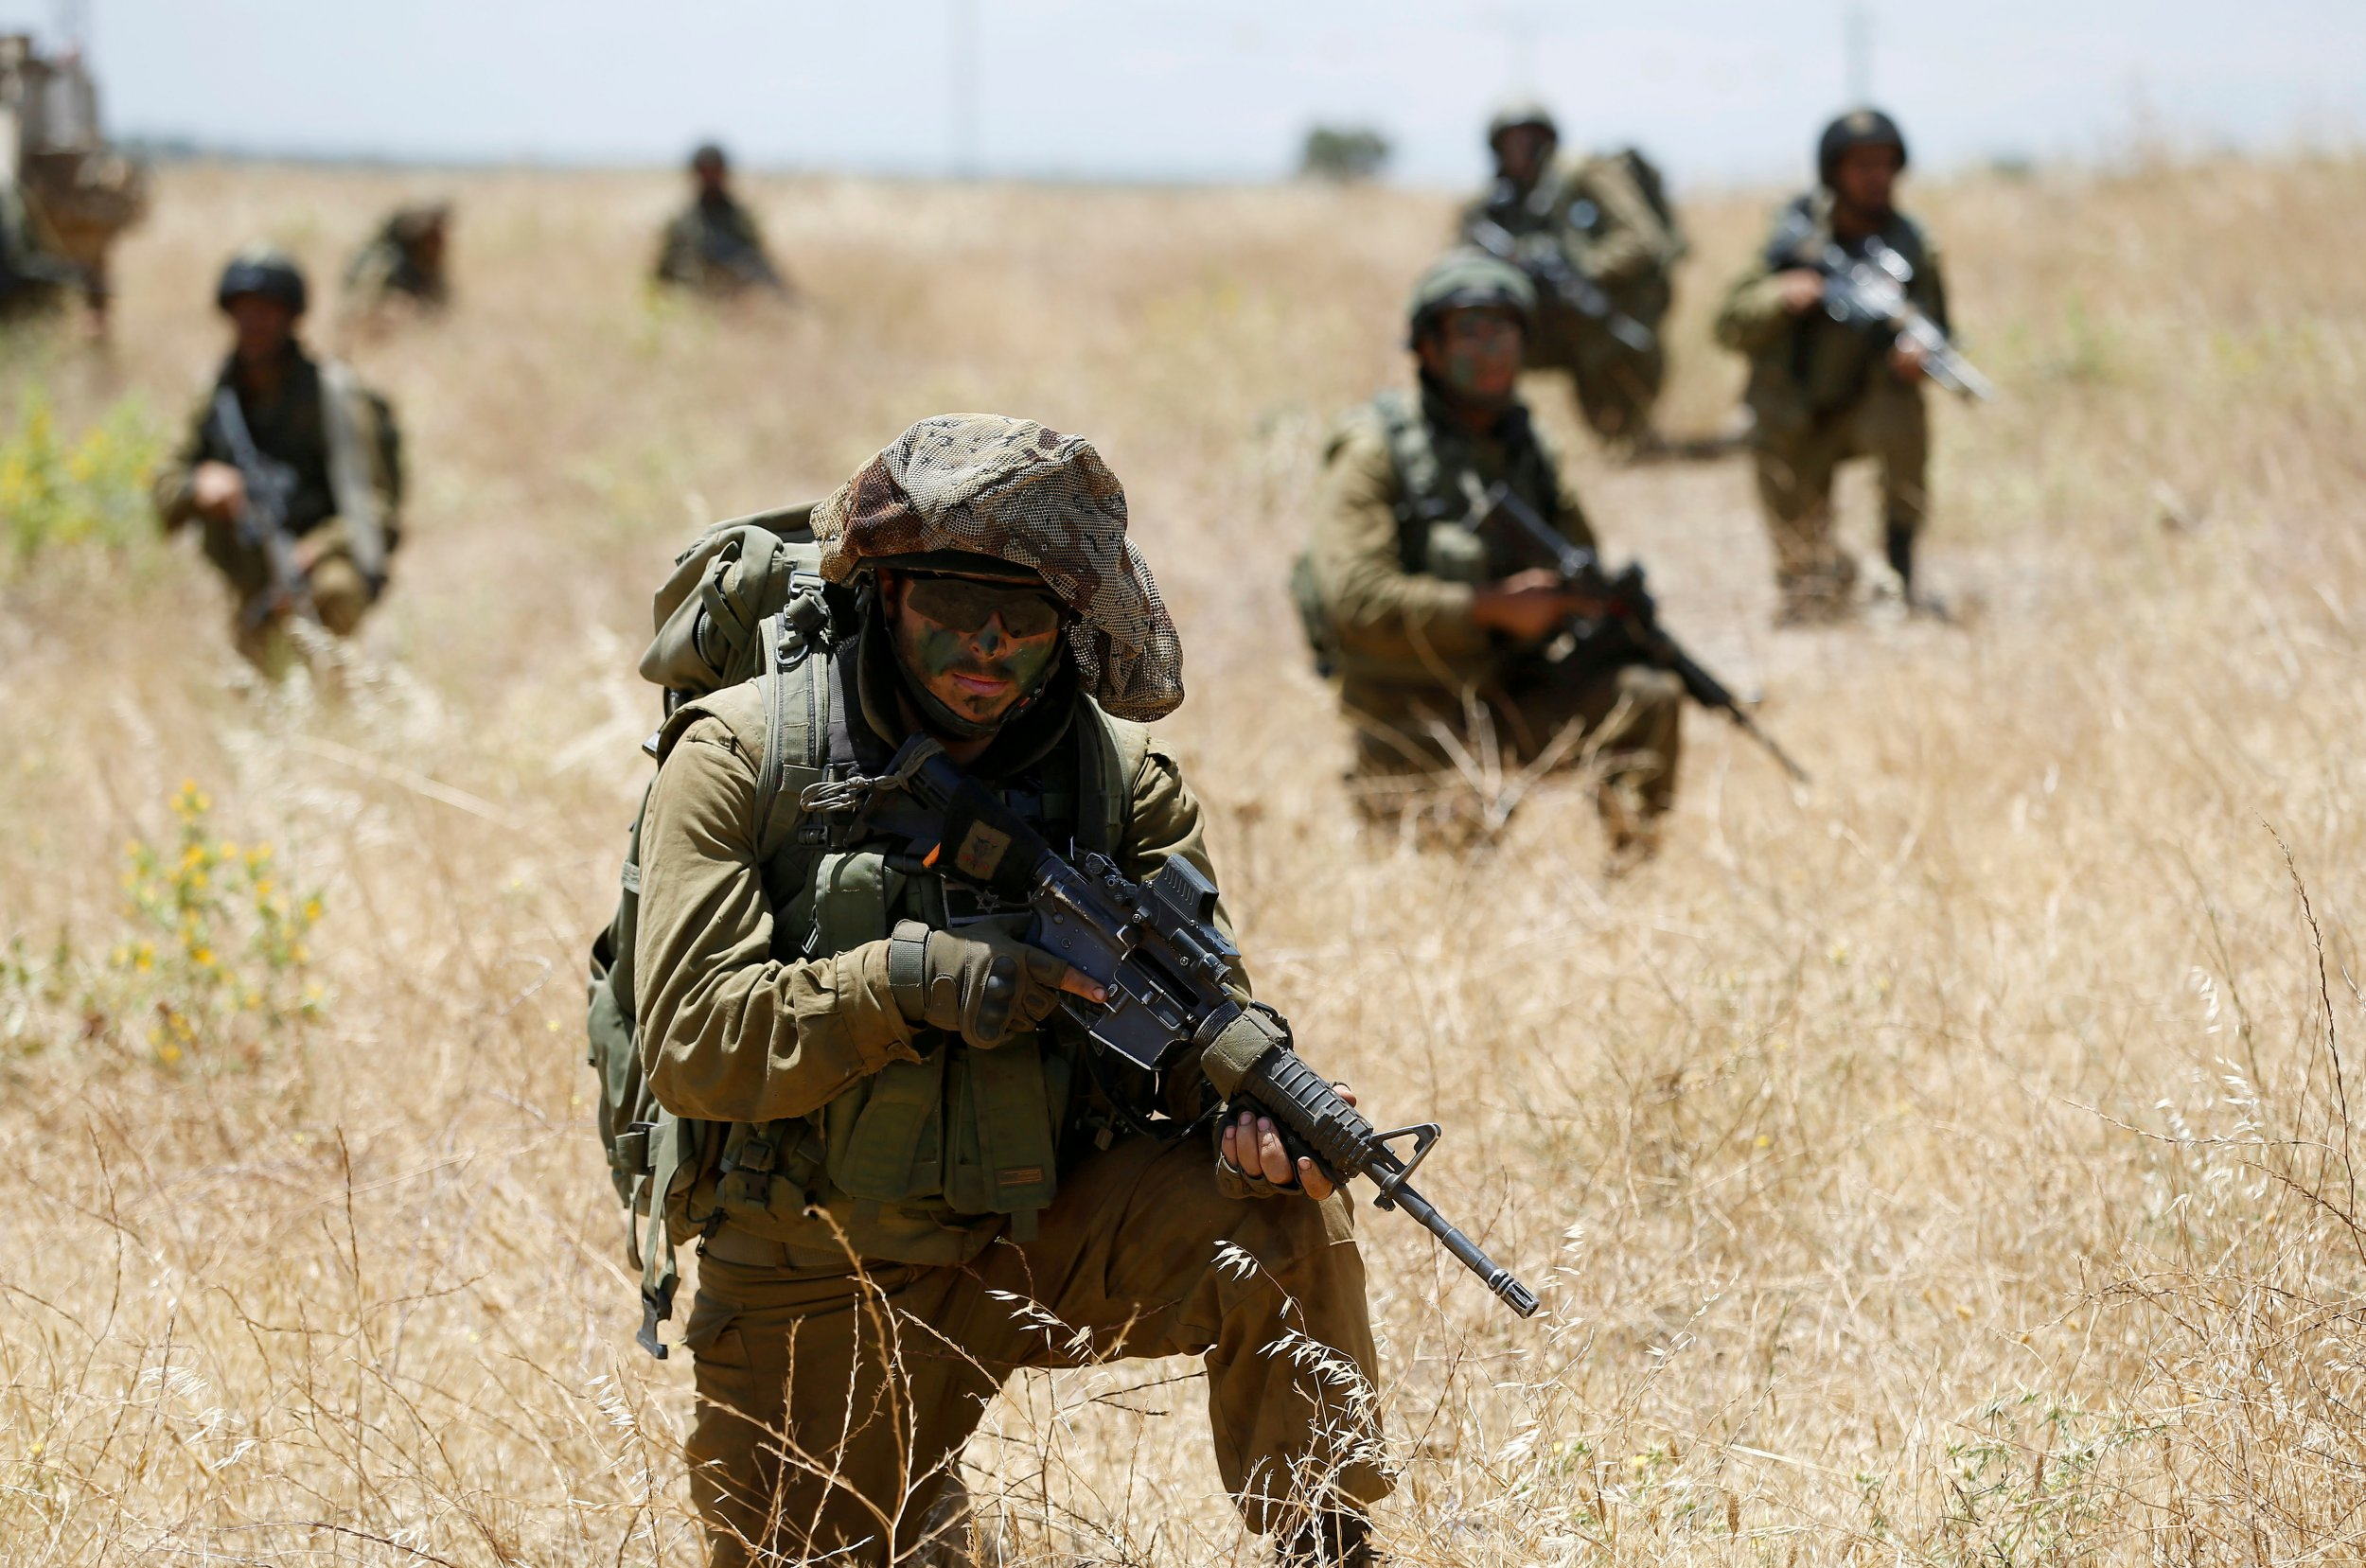 Israel Prepares for Another War With Hezbollah as IDF Practices Lebanon Invasion